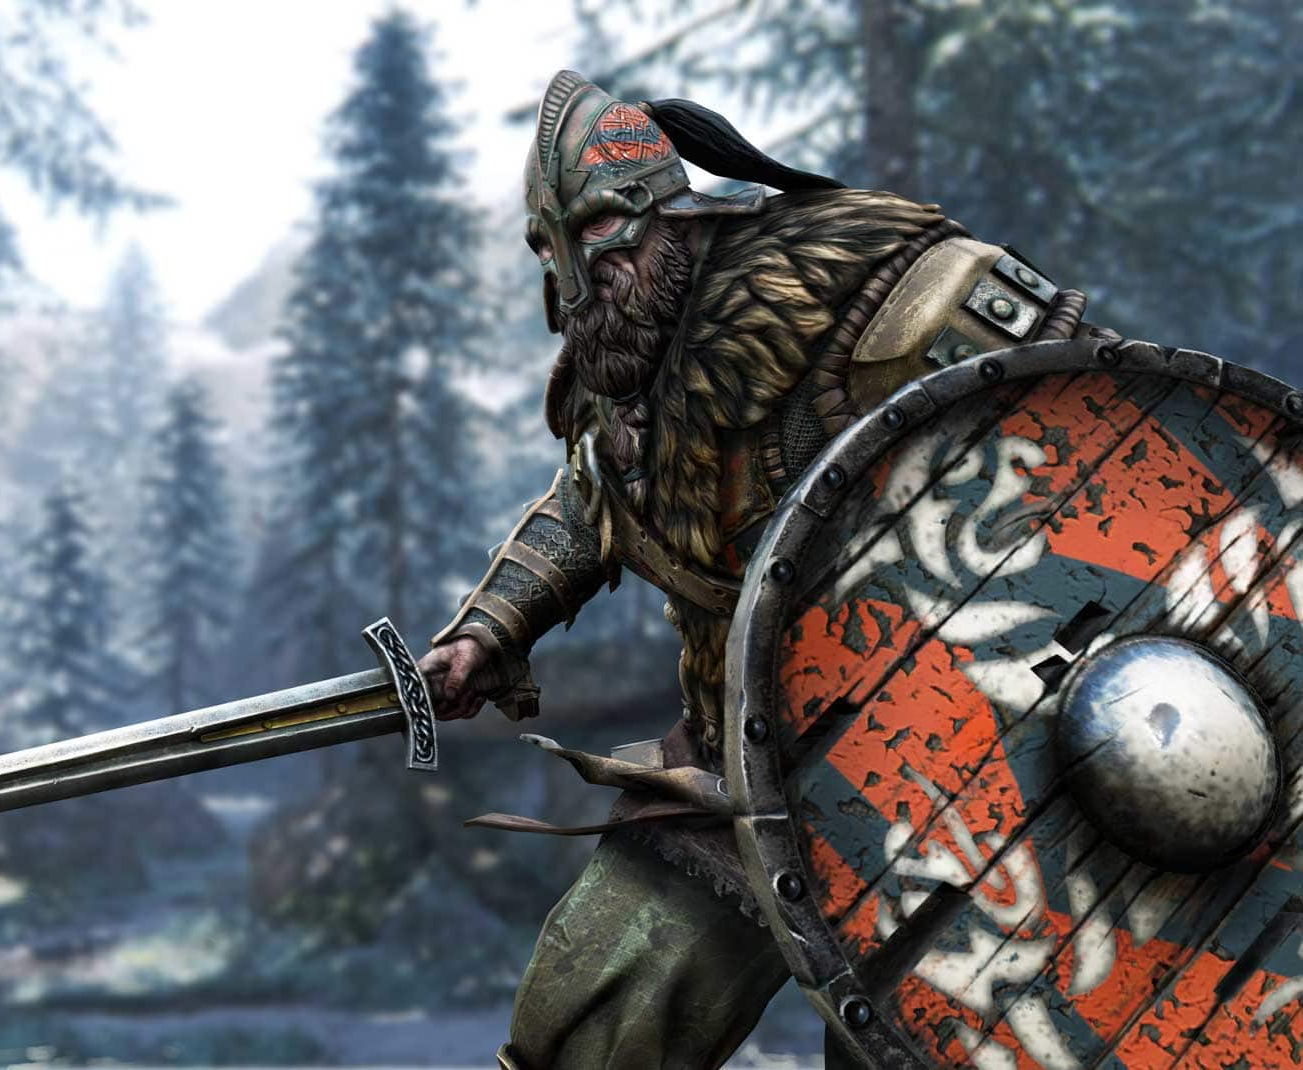 Warlord | For Honor Wiki | FANDOM powered by Wikia